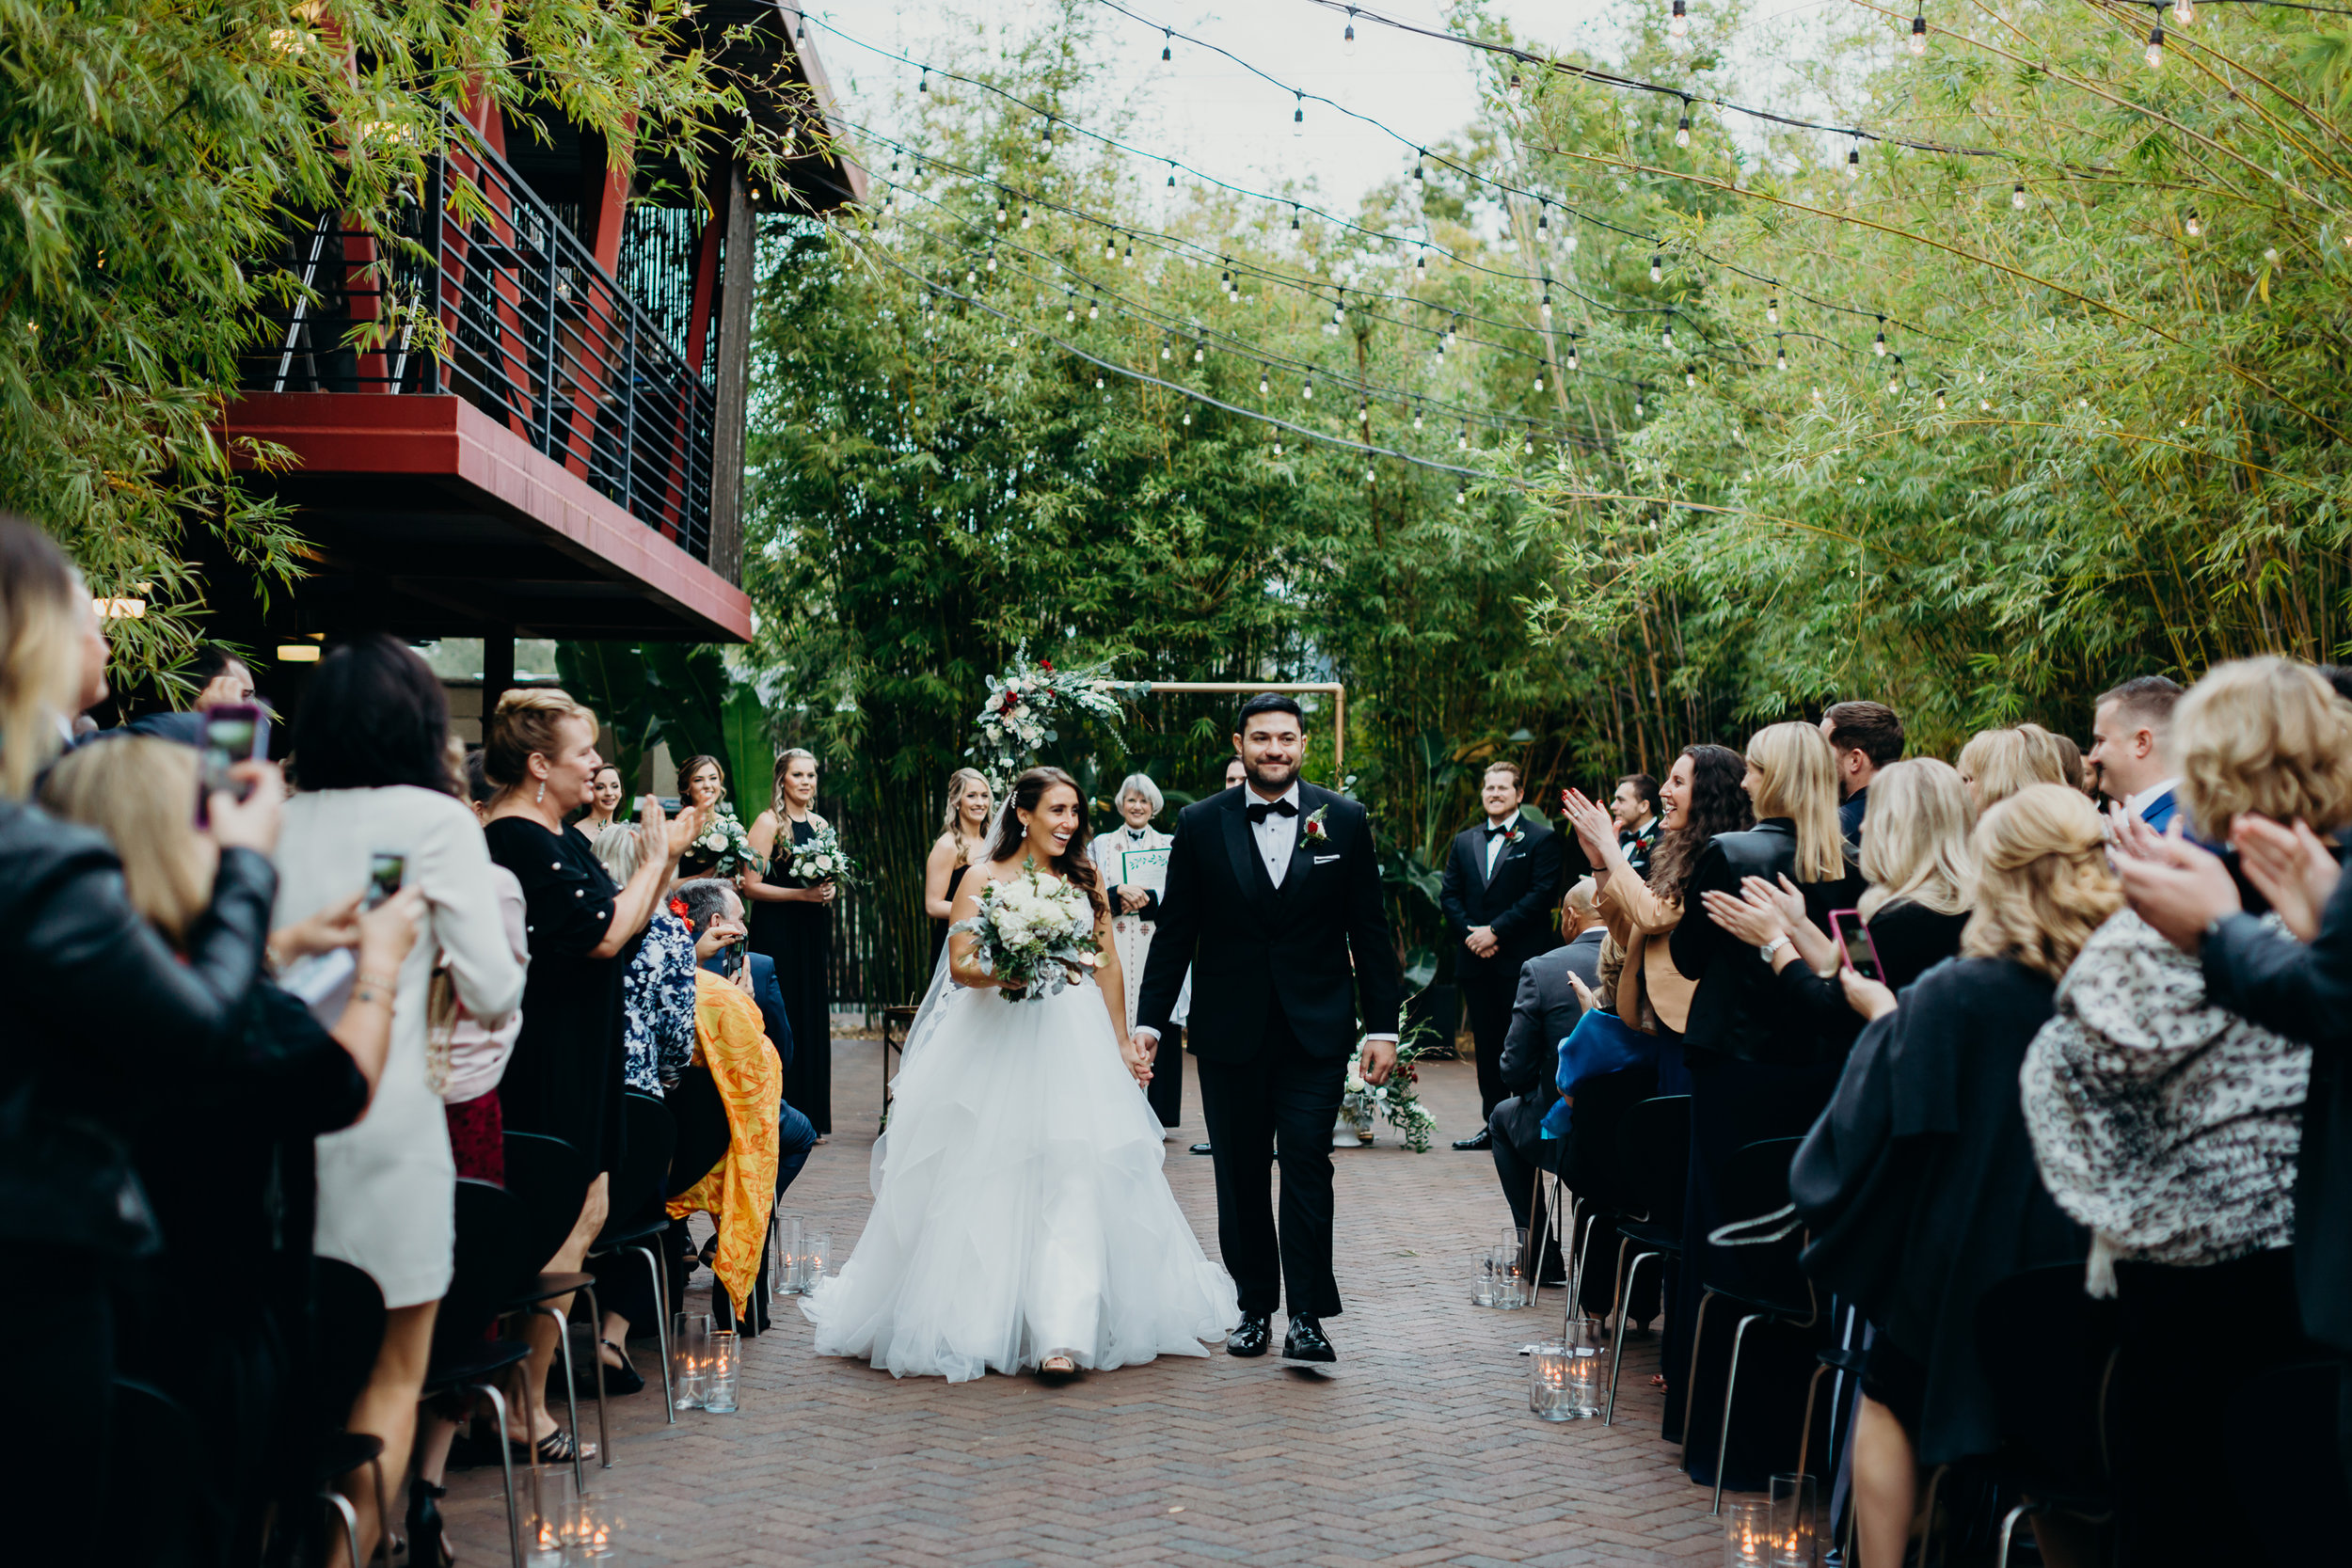 Gianna Keiko Atlanta San Francisco NYC Wedding Engagement Wedding Elopement Photographer_Sneak Peek-40.jpg